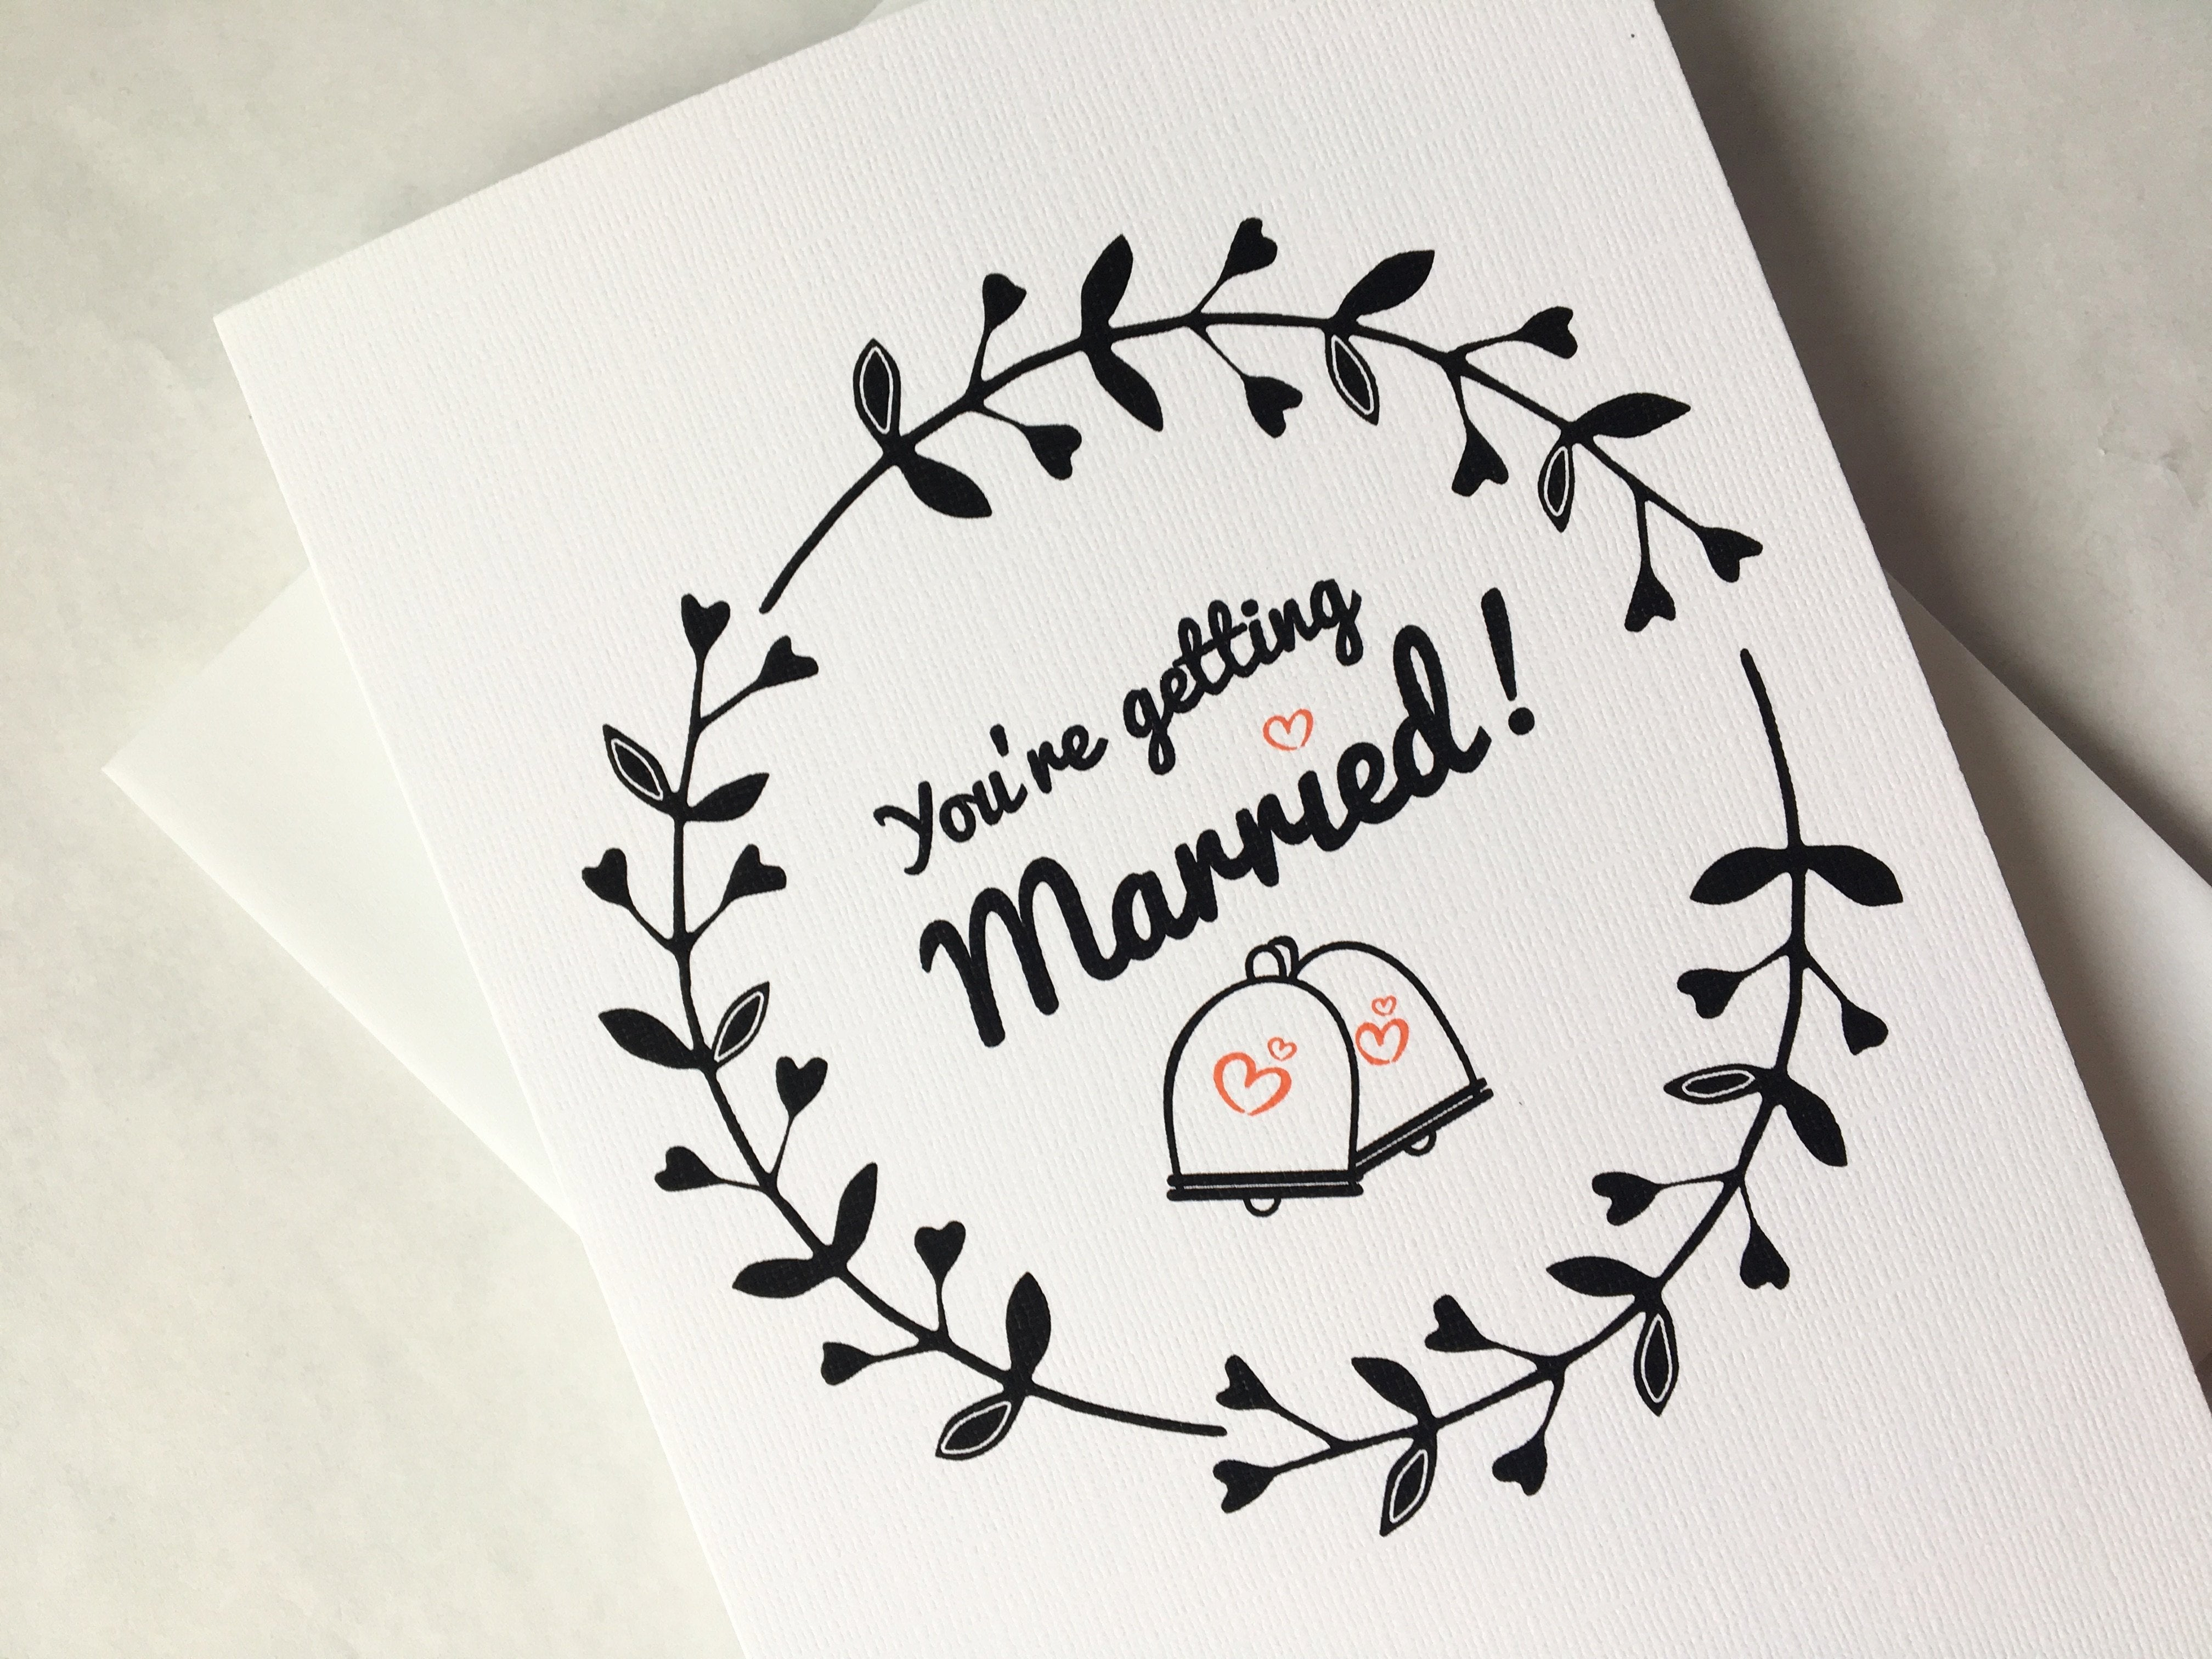 You're Getting Married?! Why? | A Sarcastic Wedding Card